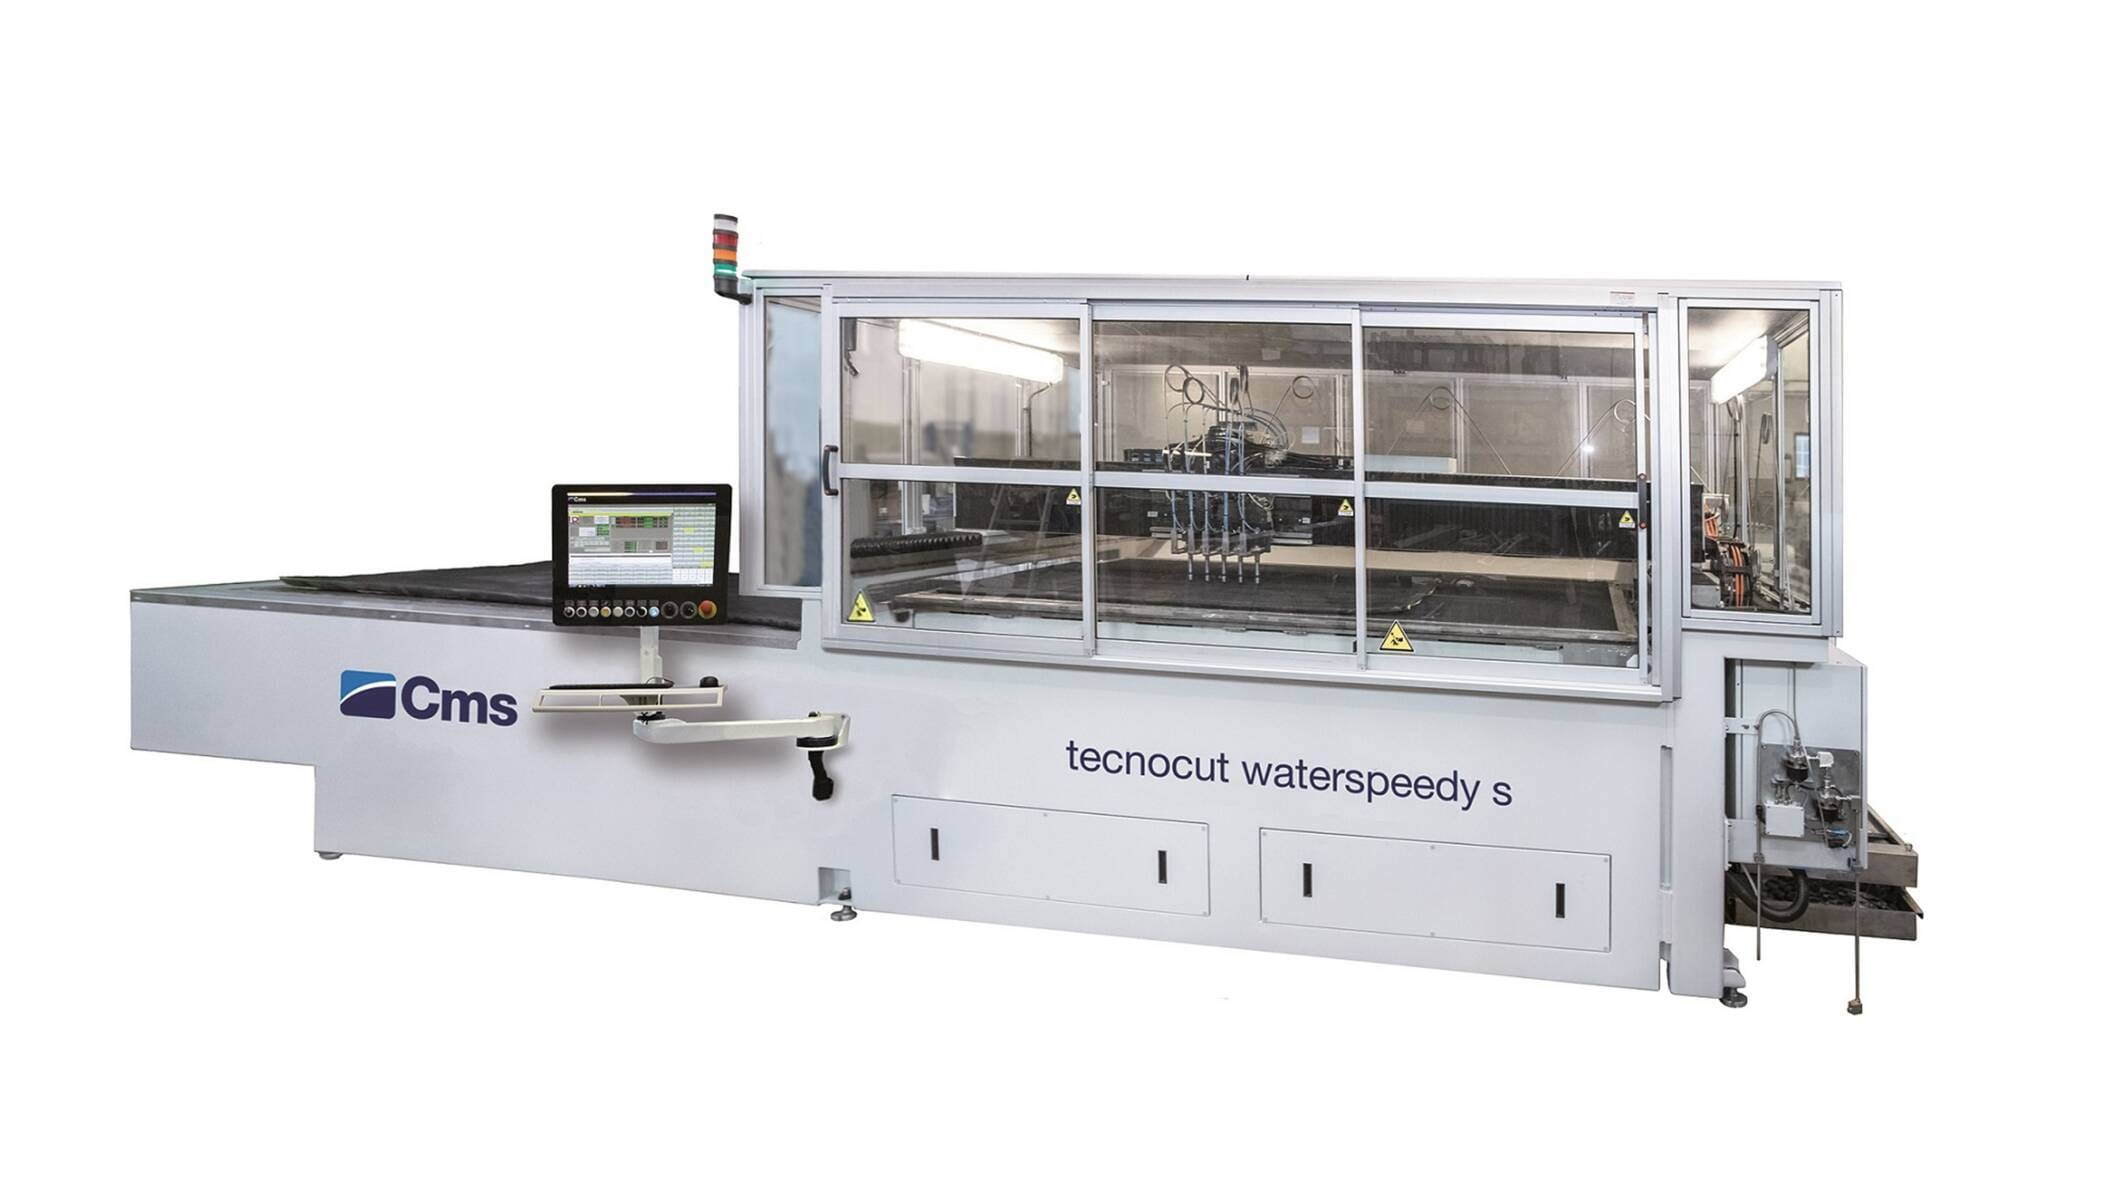 Metal processing - Complete waterjet cutting systems - tecnocut waterspeedy s